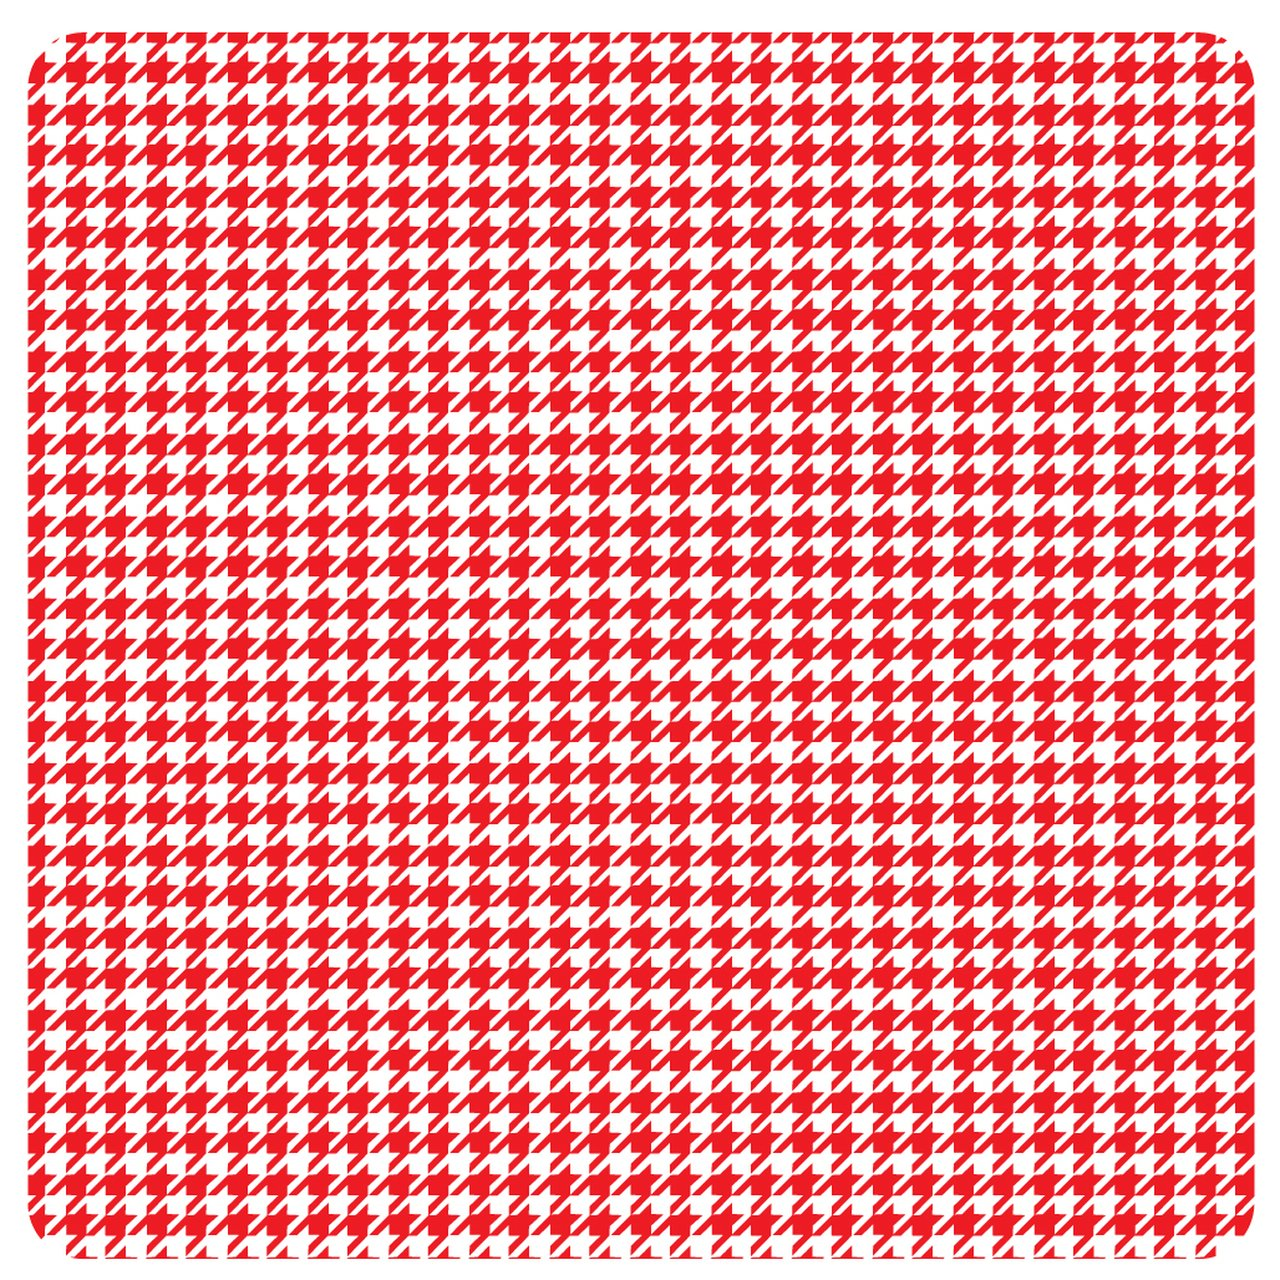 Red and White Houndstooth HTV 12 x 14